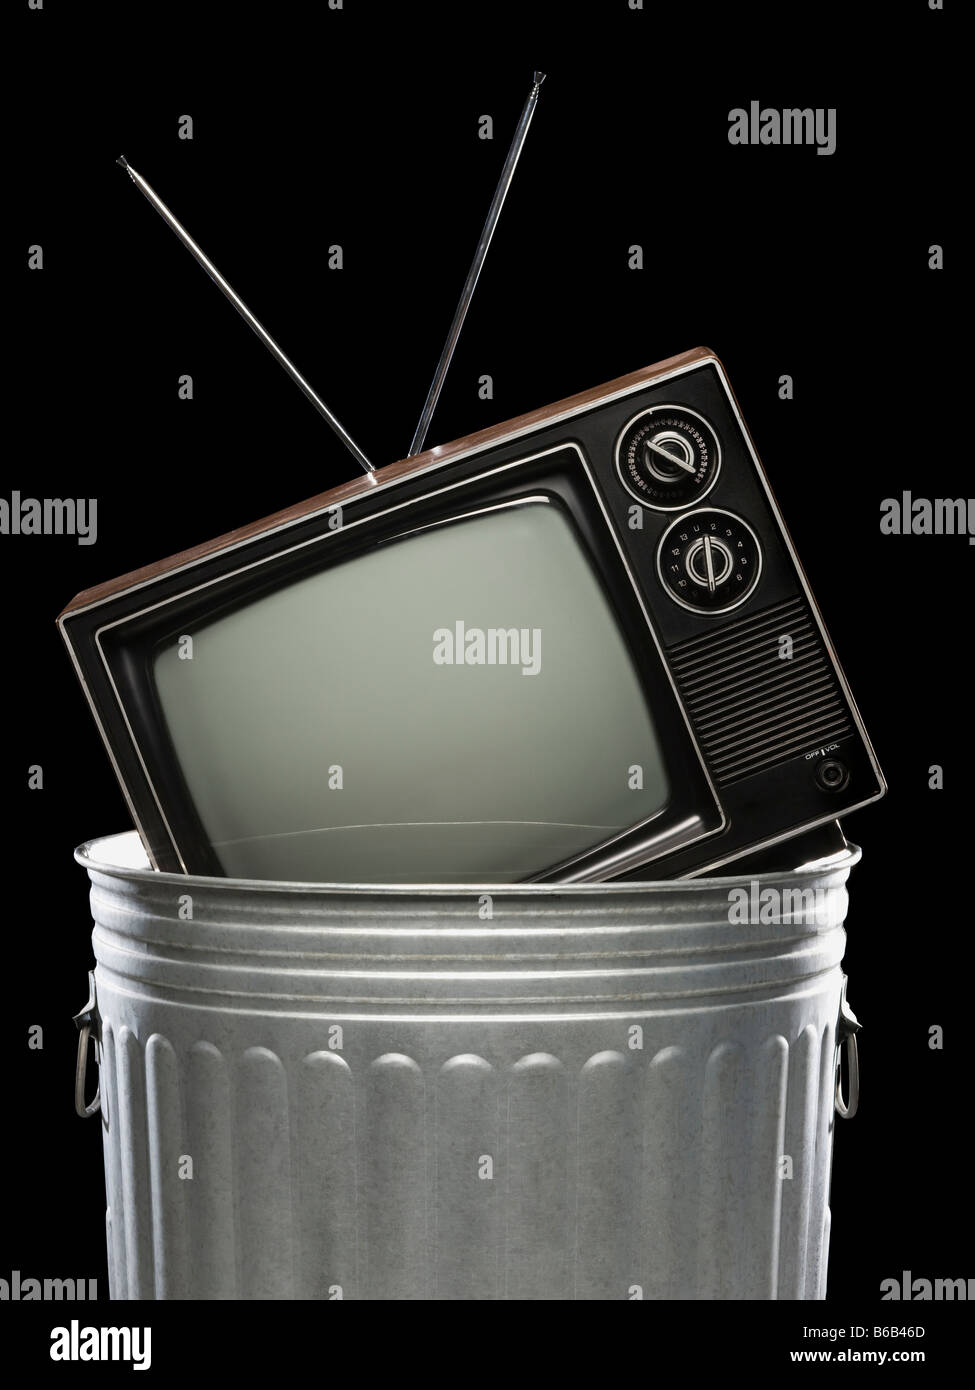 tv in the trash - Stock Image